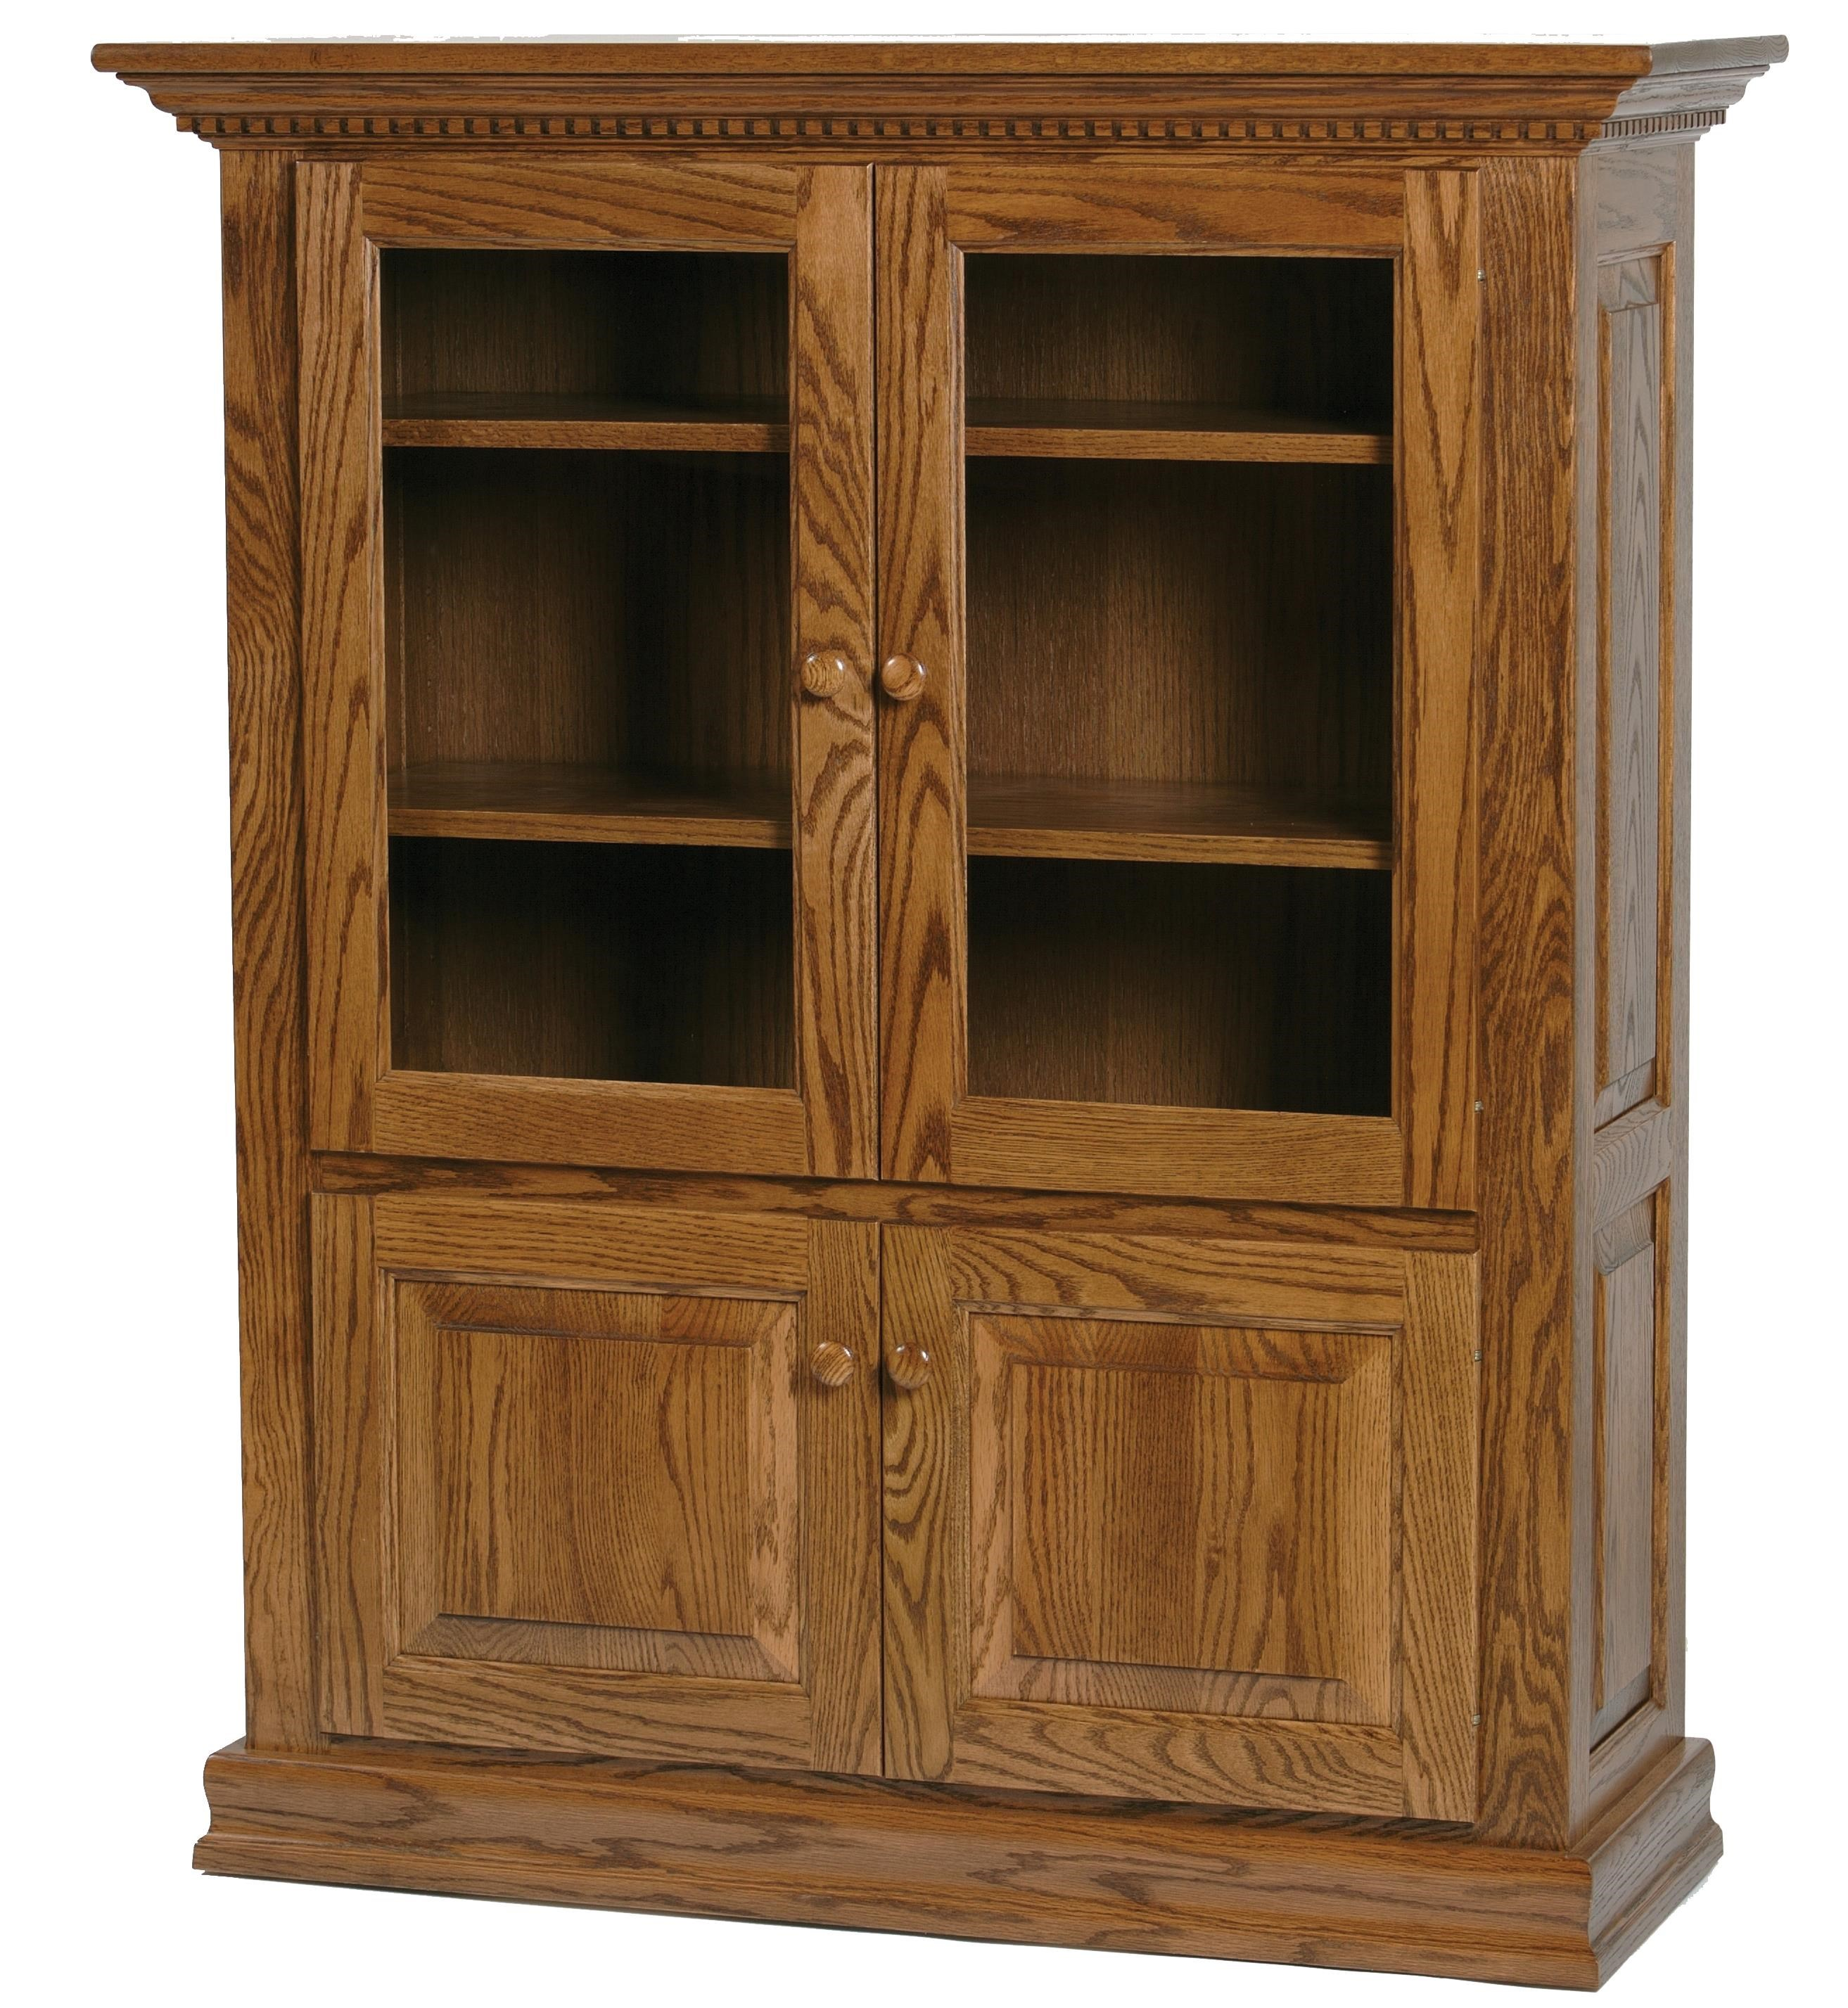 Delicieux Wonder Wood Wonder Wood Bookcases Customizable Classic Bookcase